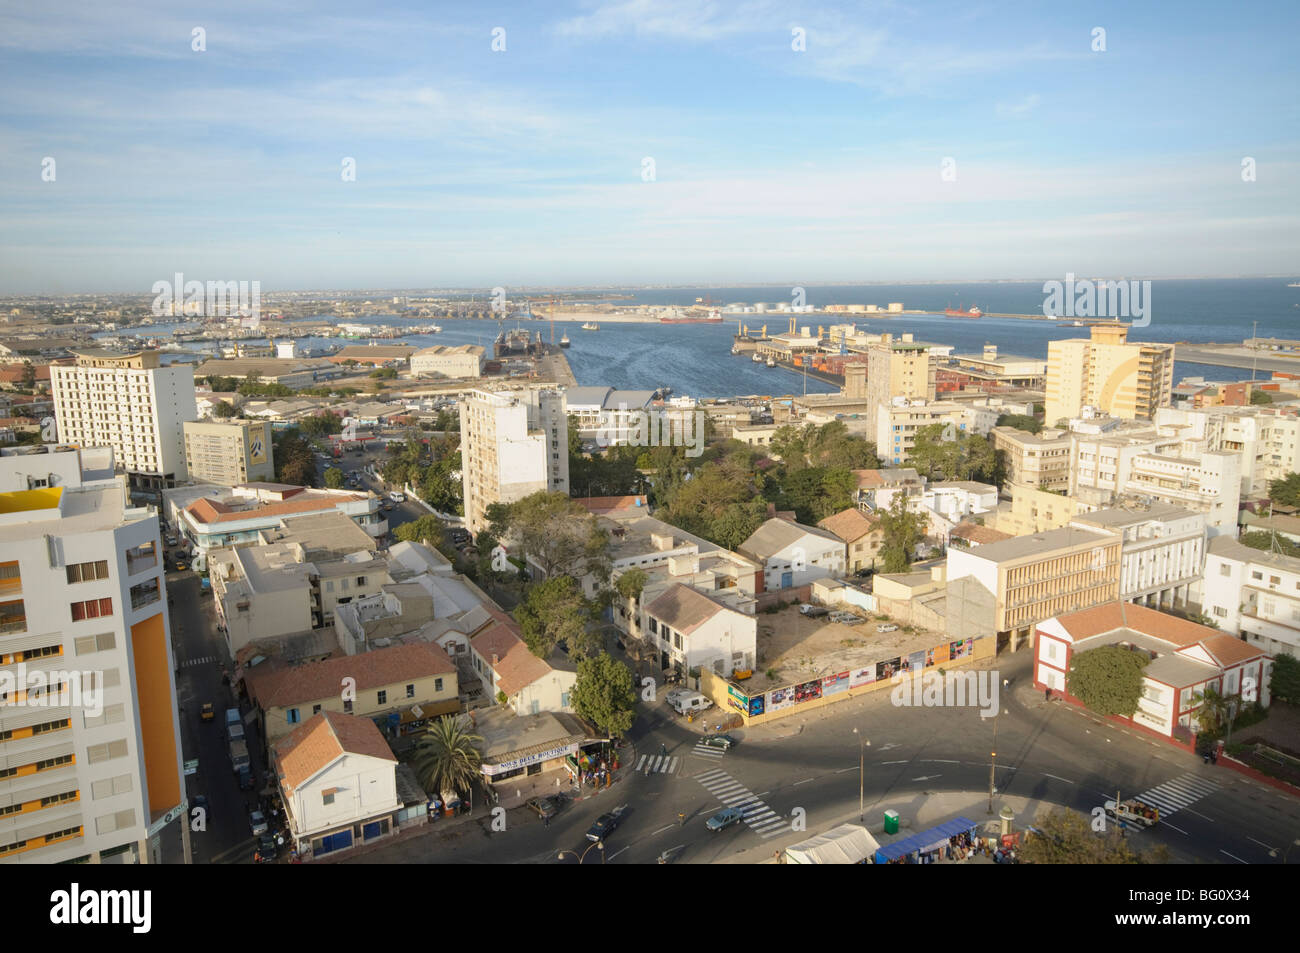 Dakar, Senegal, África occidental, África Imagen De Stock